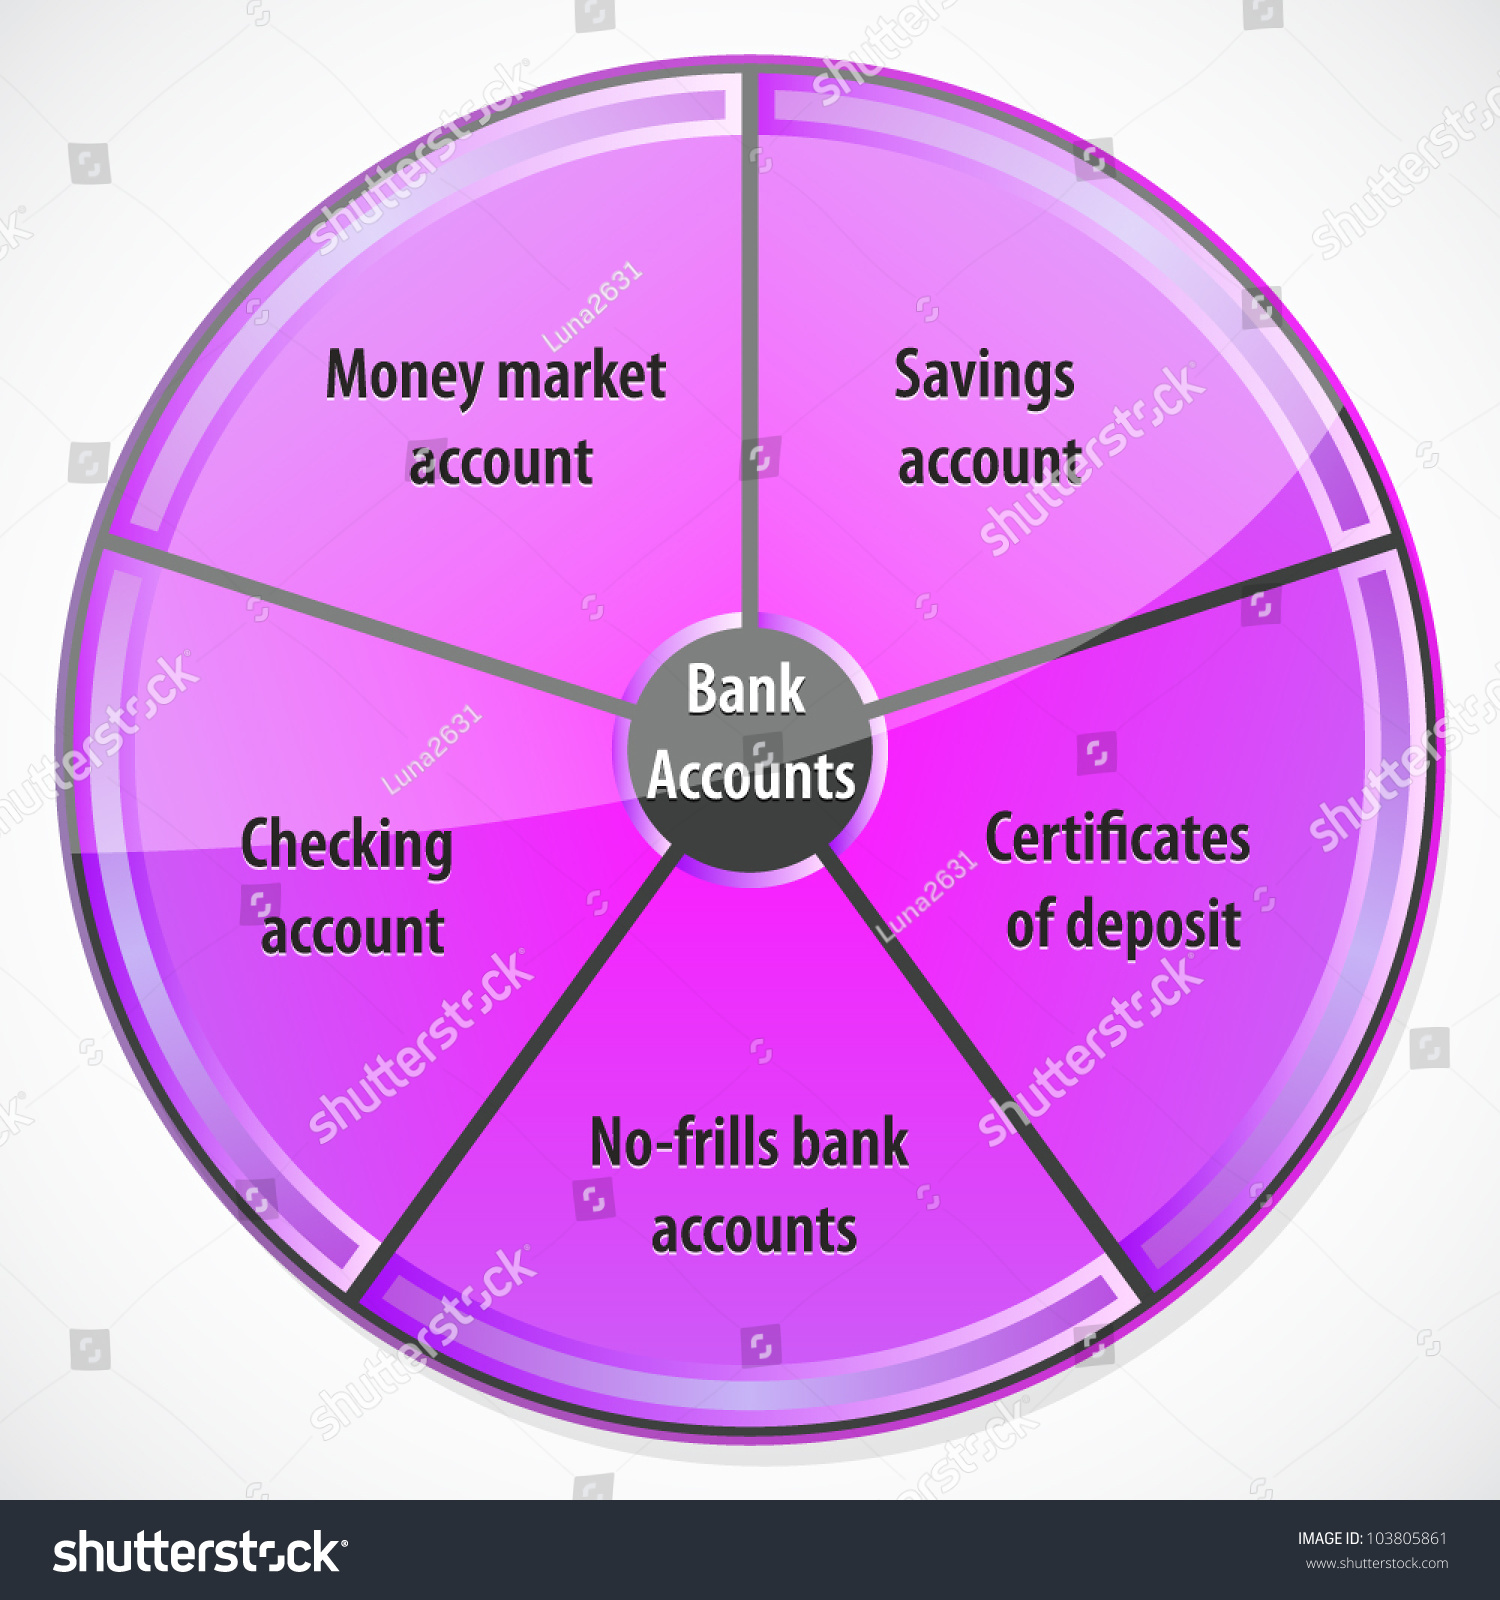 Diagram illustrating different types bank accounts stock vector diagram illustrating different types of bank accounts xflitez Gallery